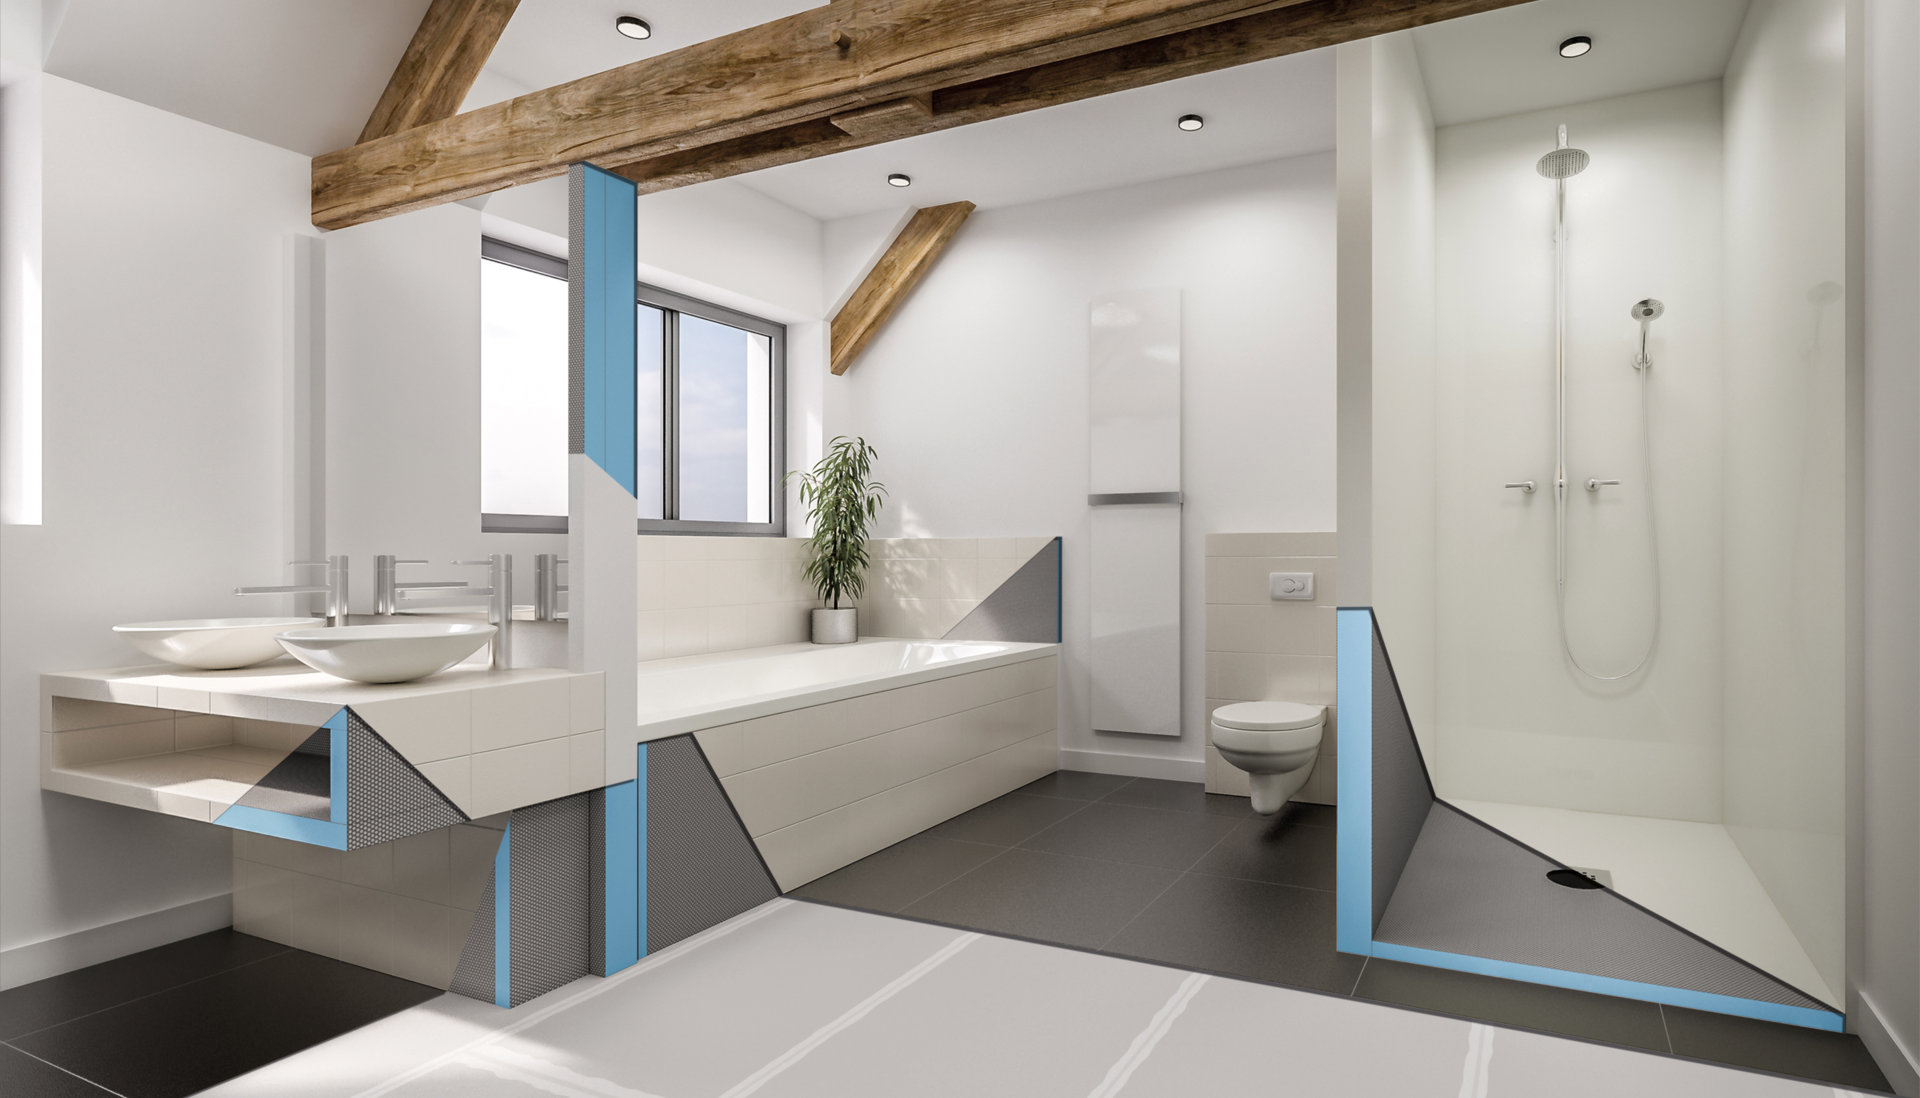 Marmox waterproof insulation boards in the bathroom | Marmox NZ